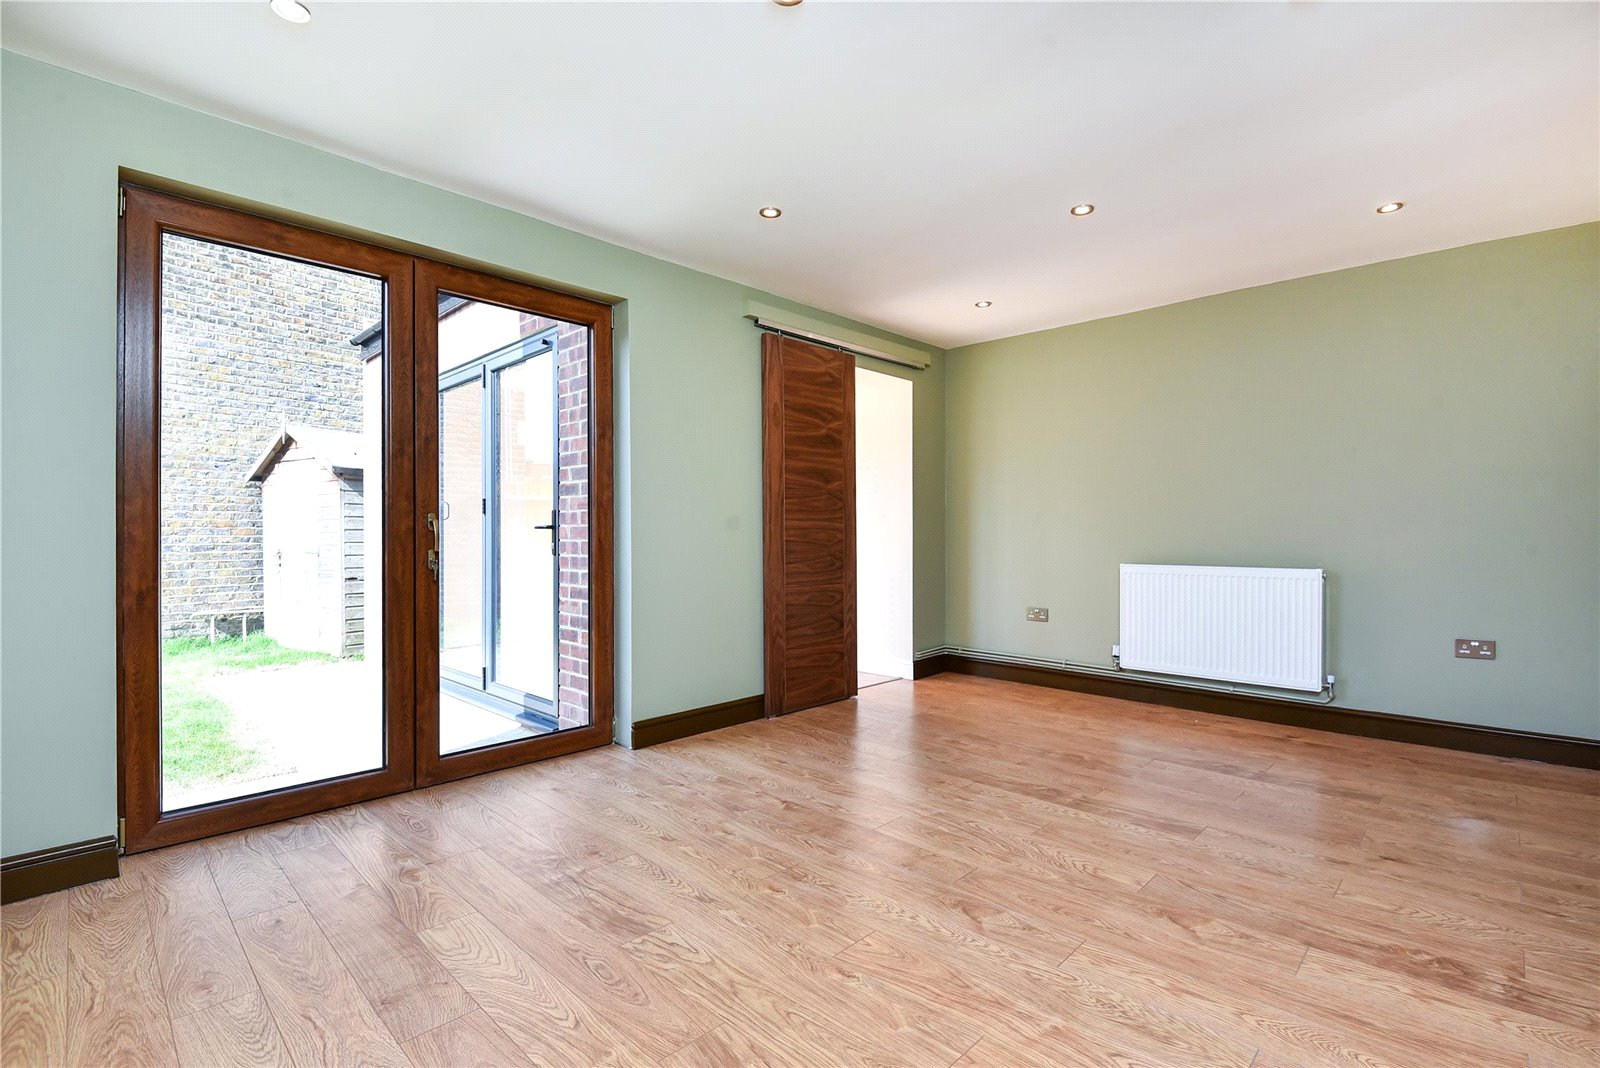 3 bed house for sale in Streatham 5